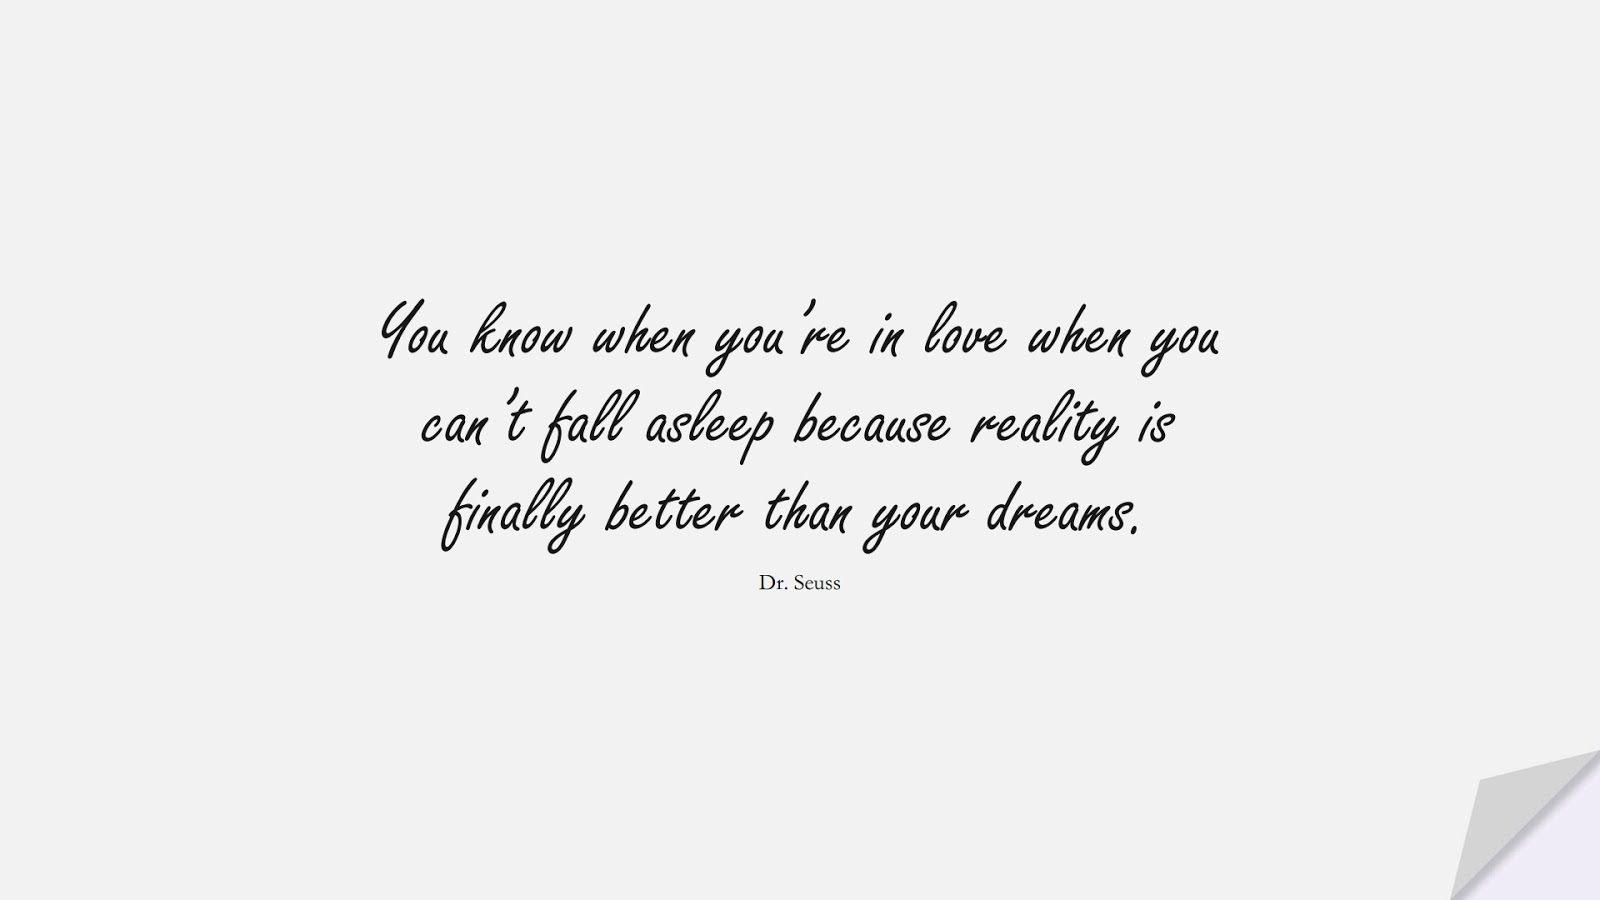 You know when you're in love when you can't fall asleep because reality is finally better than your dreams. (Dr. Seuss);  #LoveQuotes